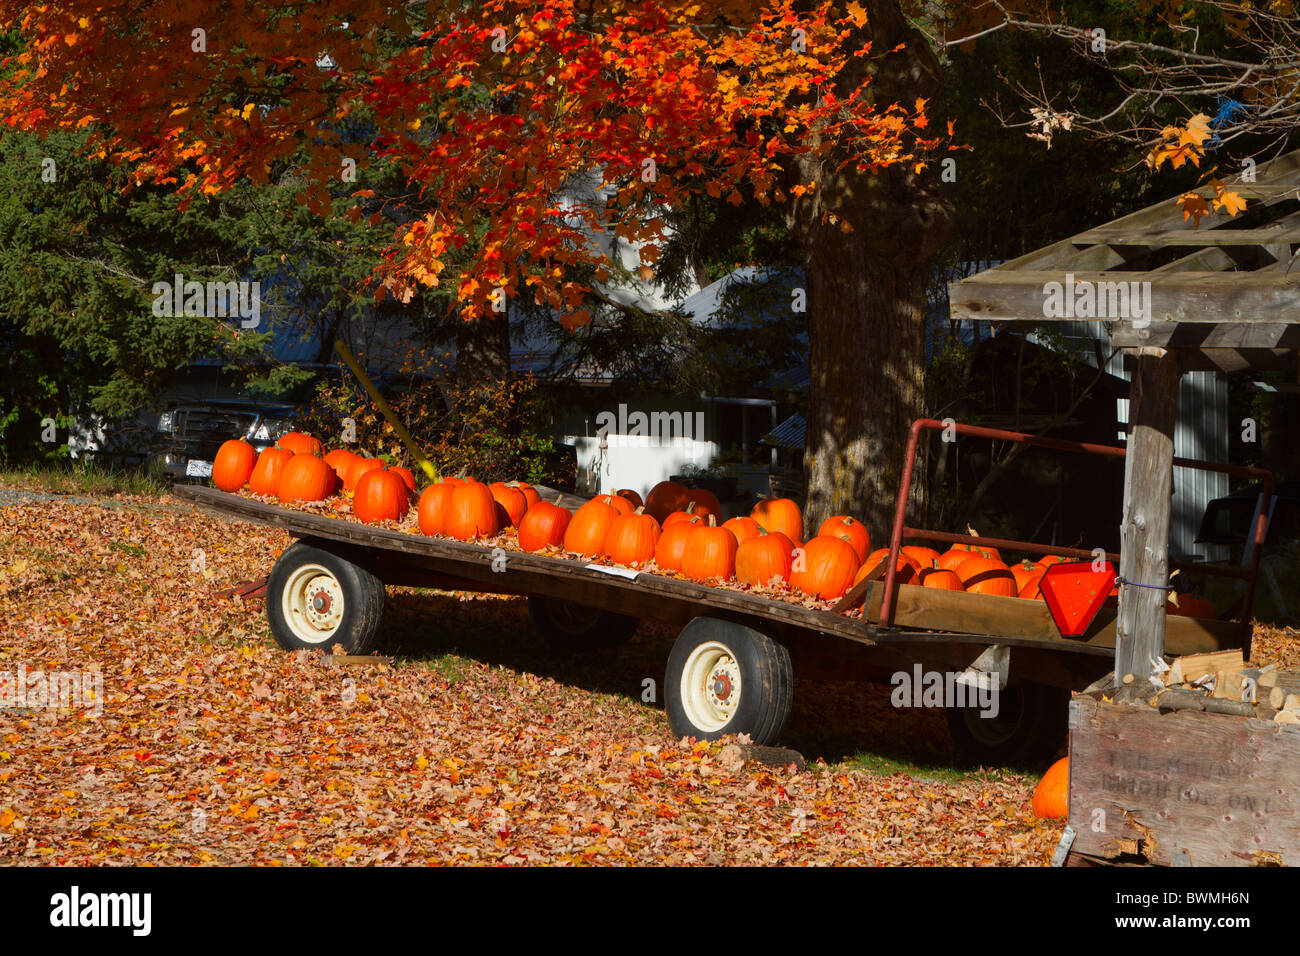 Flatbed Truck Trailer With Pumpkins For Sale In Rural Southern Stock Photo 33029325 Alamy